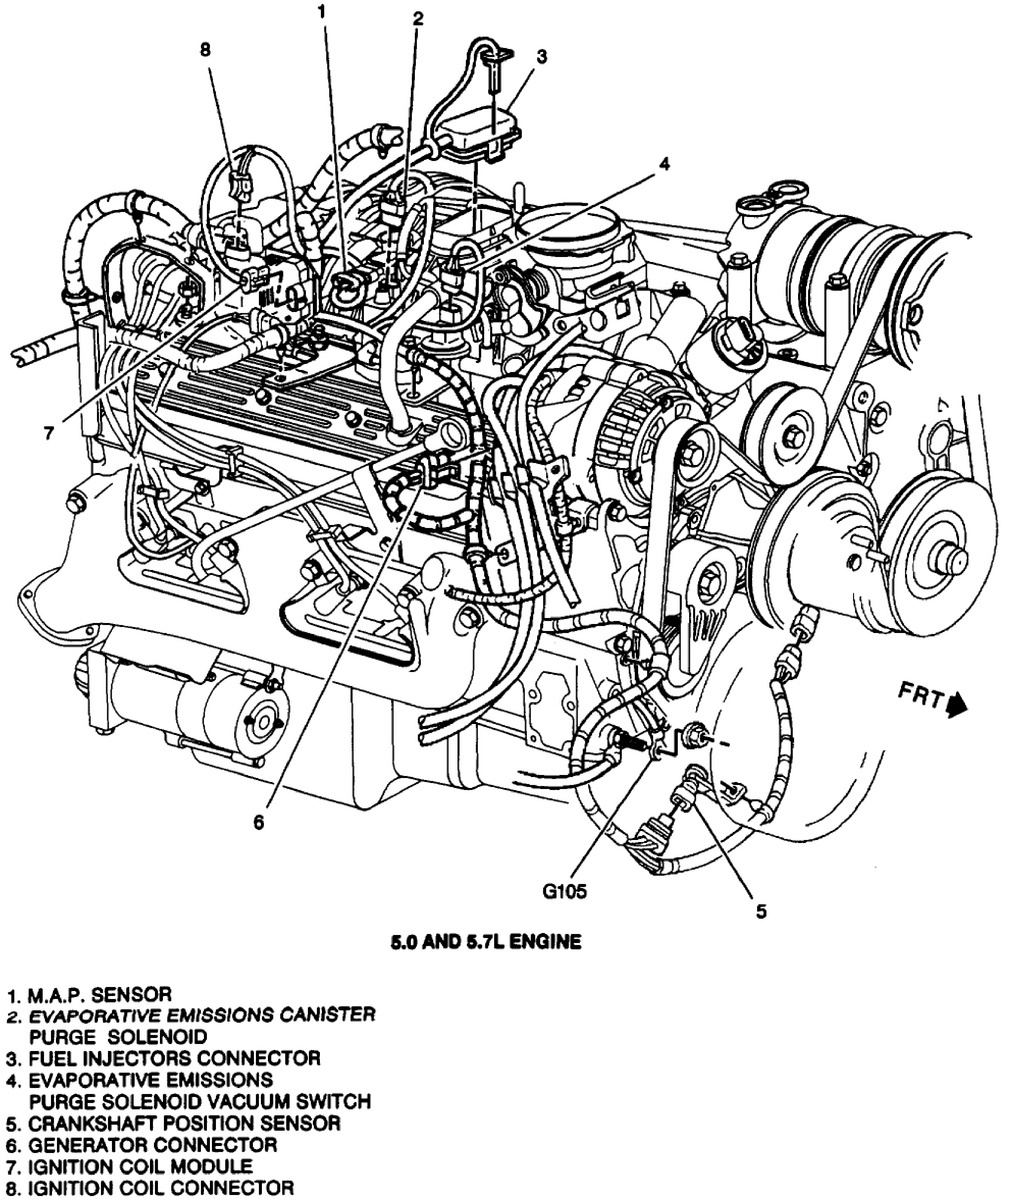 hight resolution of 99 chevy tahoe engine diagram enthusiast wiring diagrams u2022 rh rasalibre co 2007 chevy tahoe engine